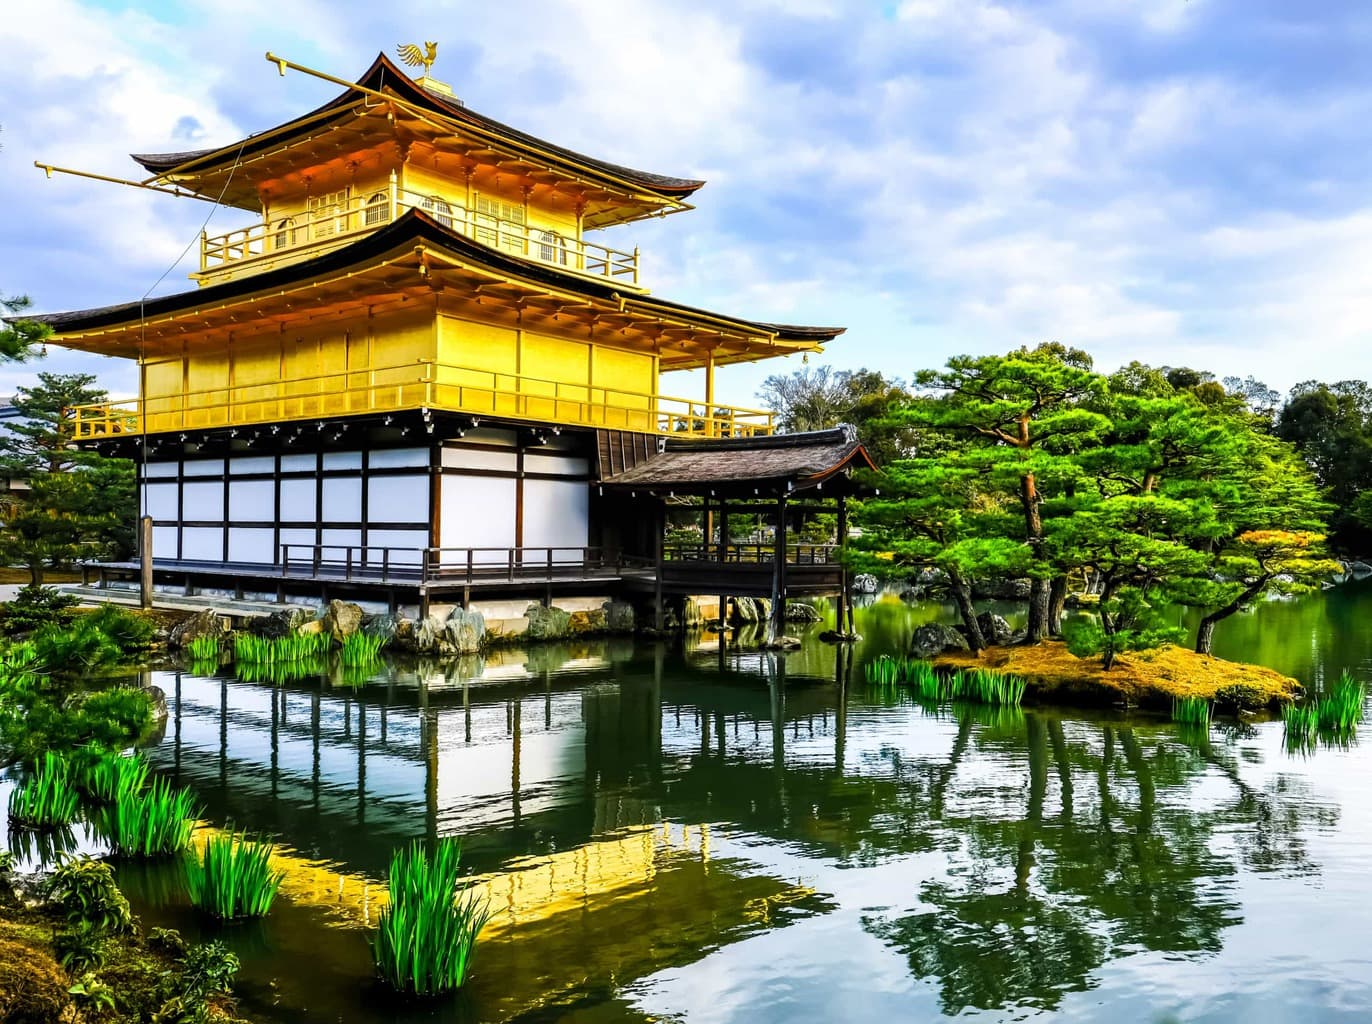 Worried About How Much Does a Trip to Japan Cost?